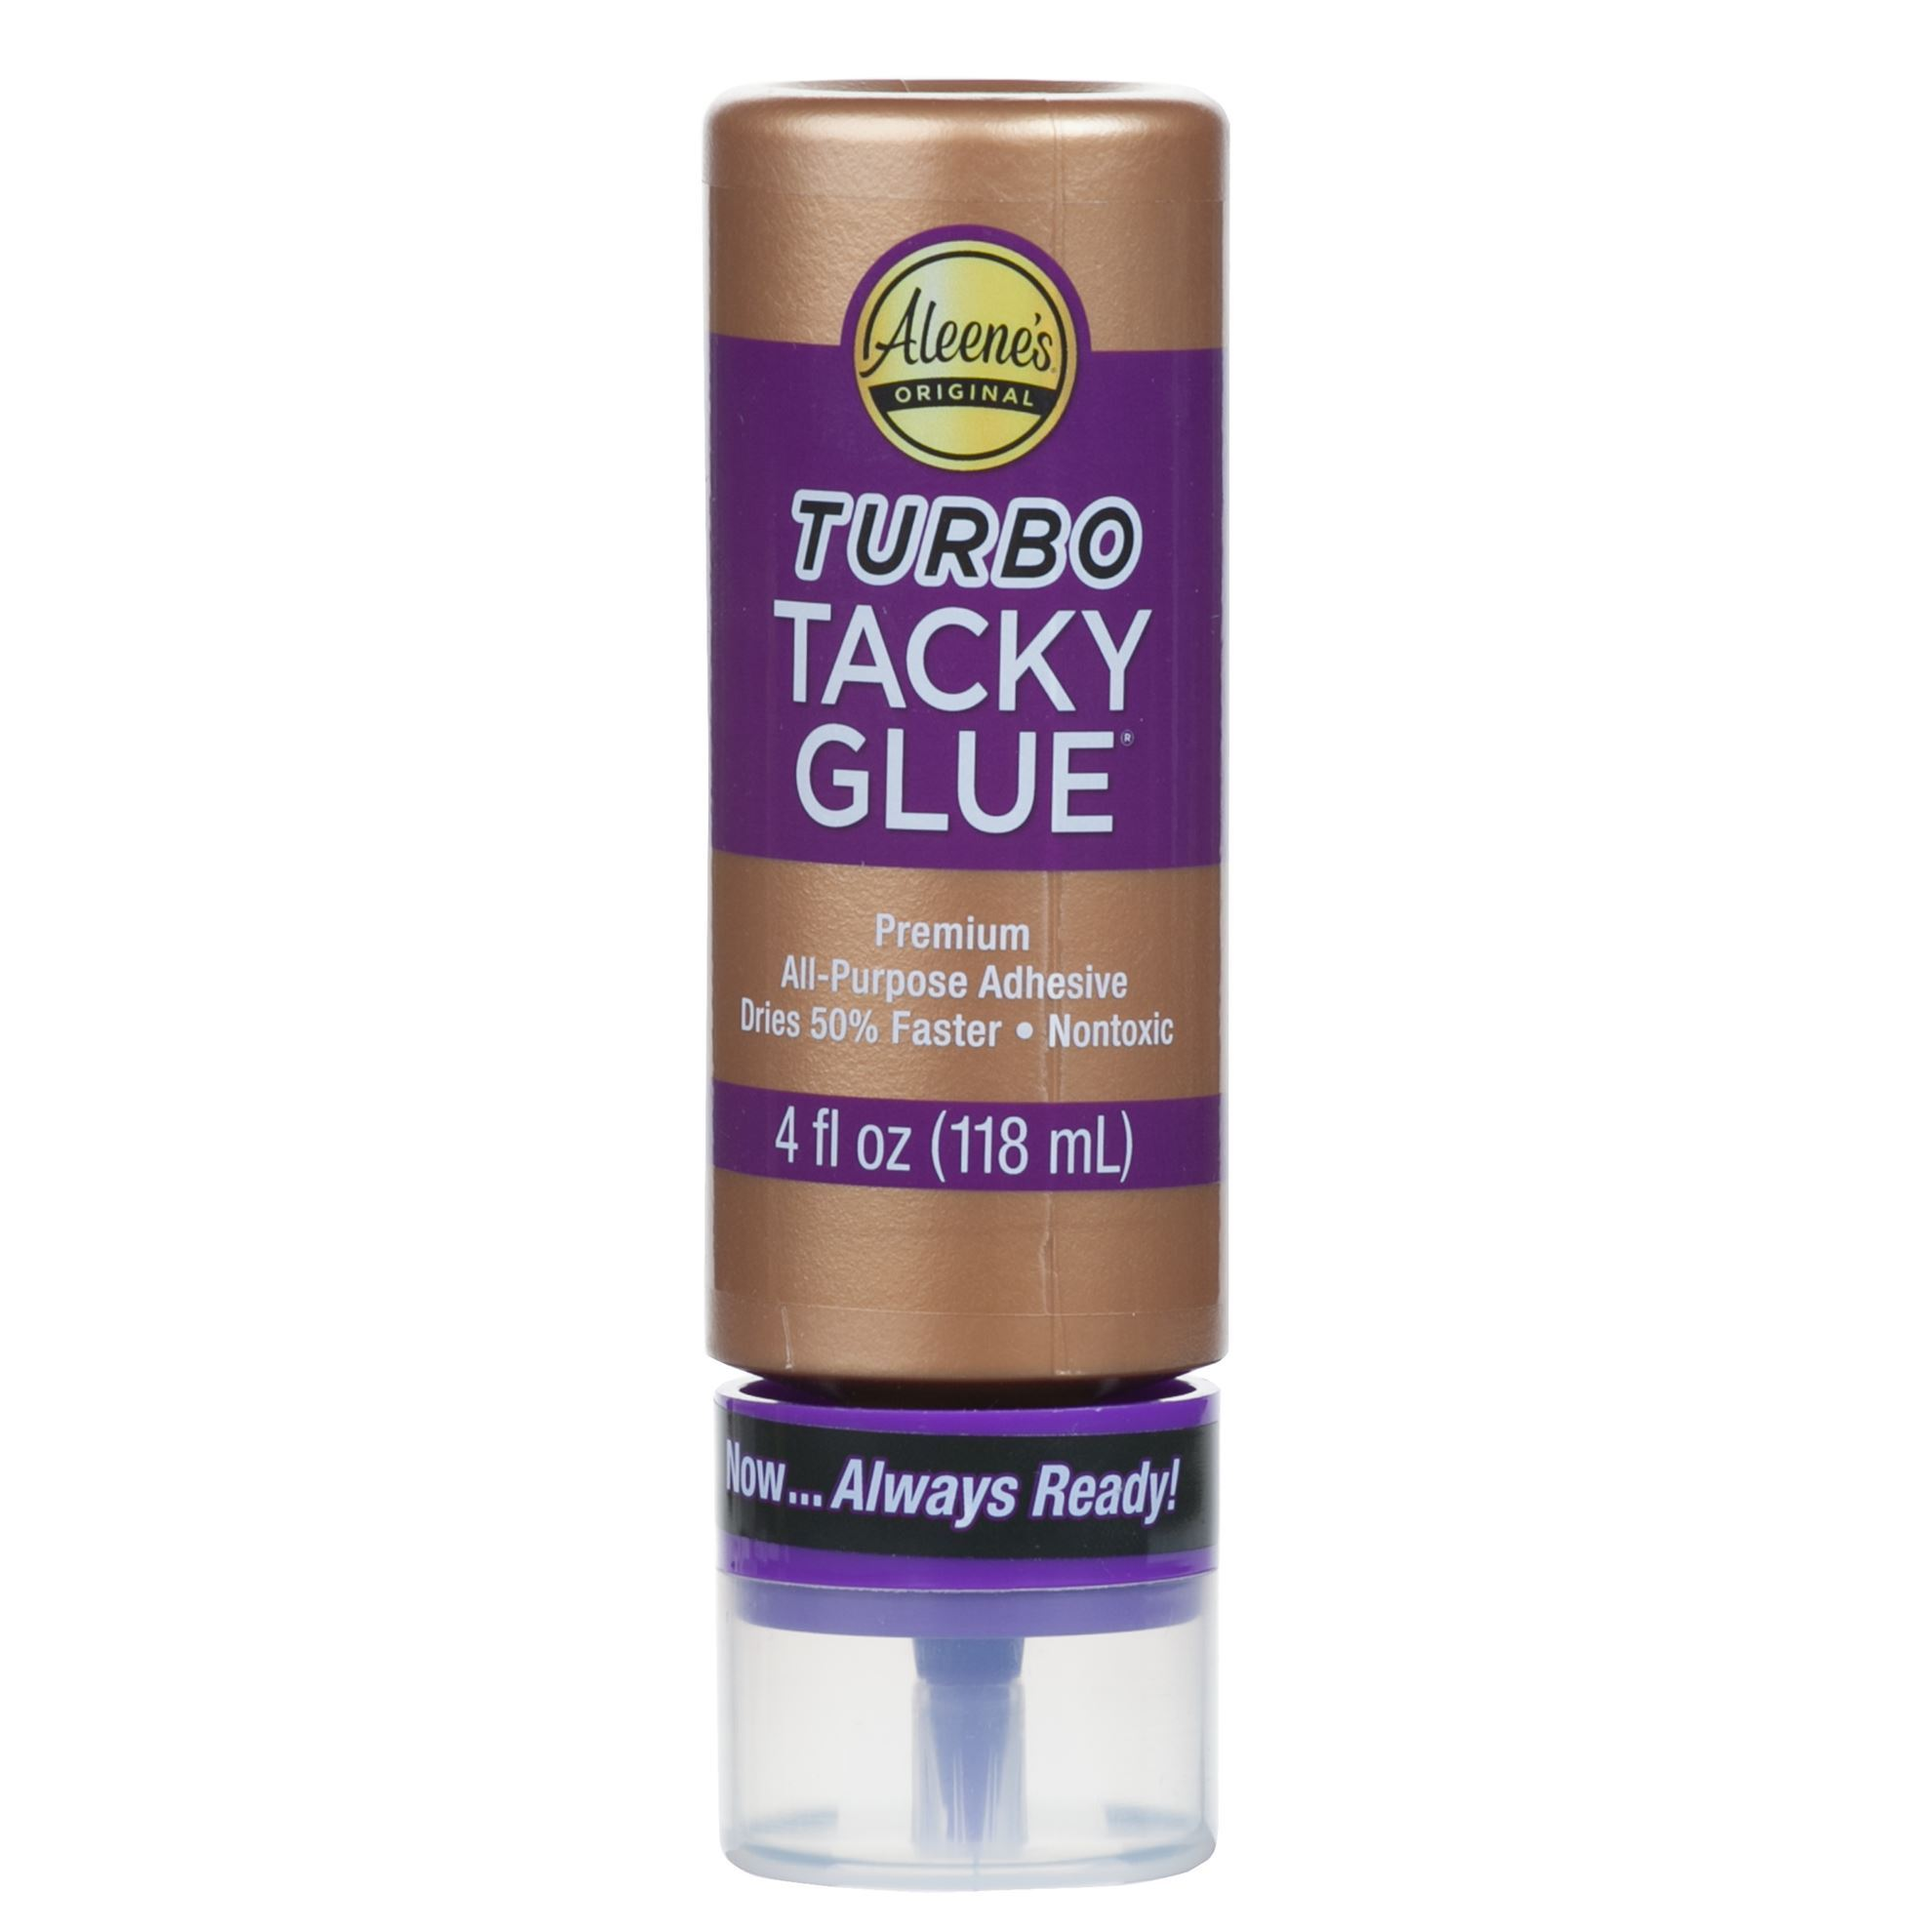 Always Ready Turbo Tacky Glue 4 oz.